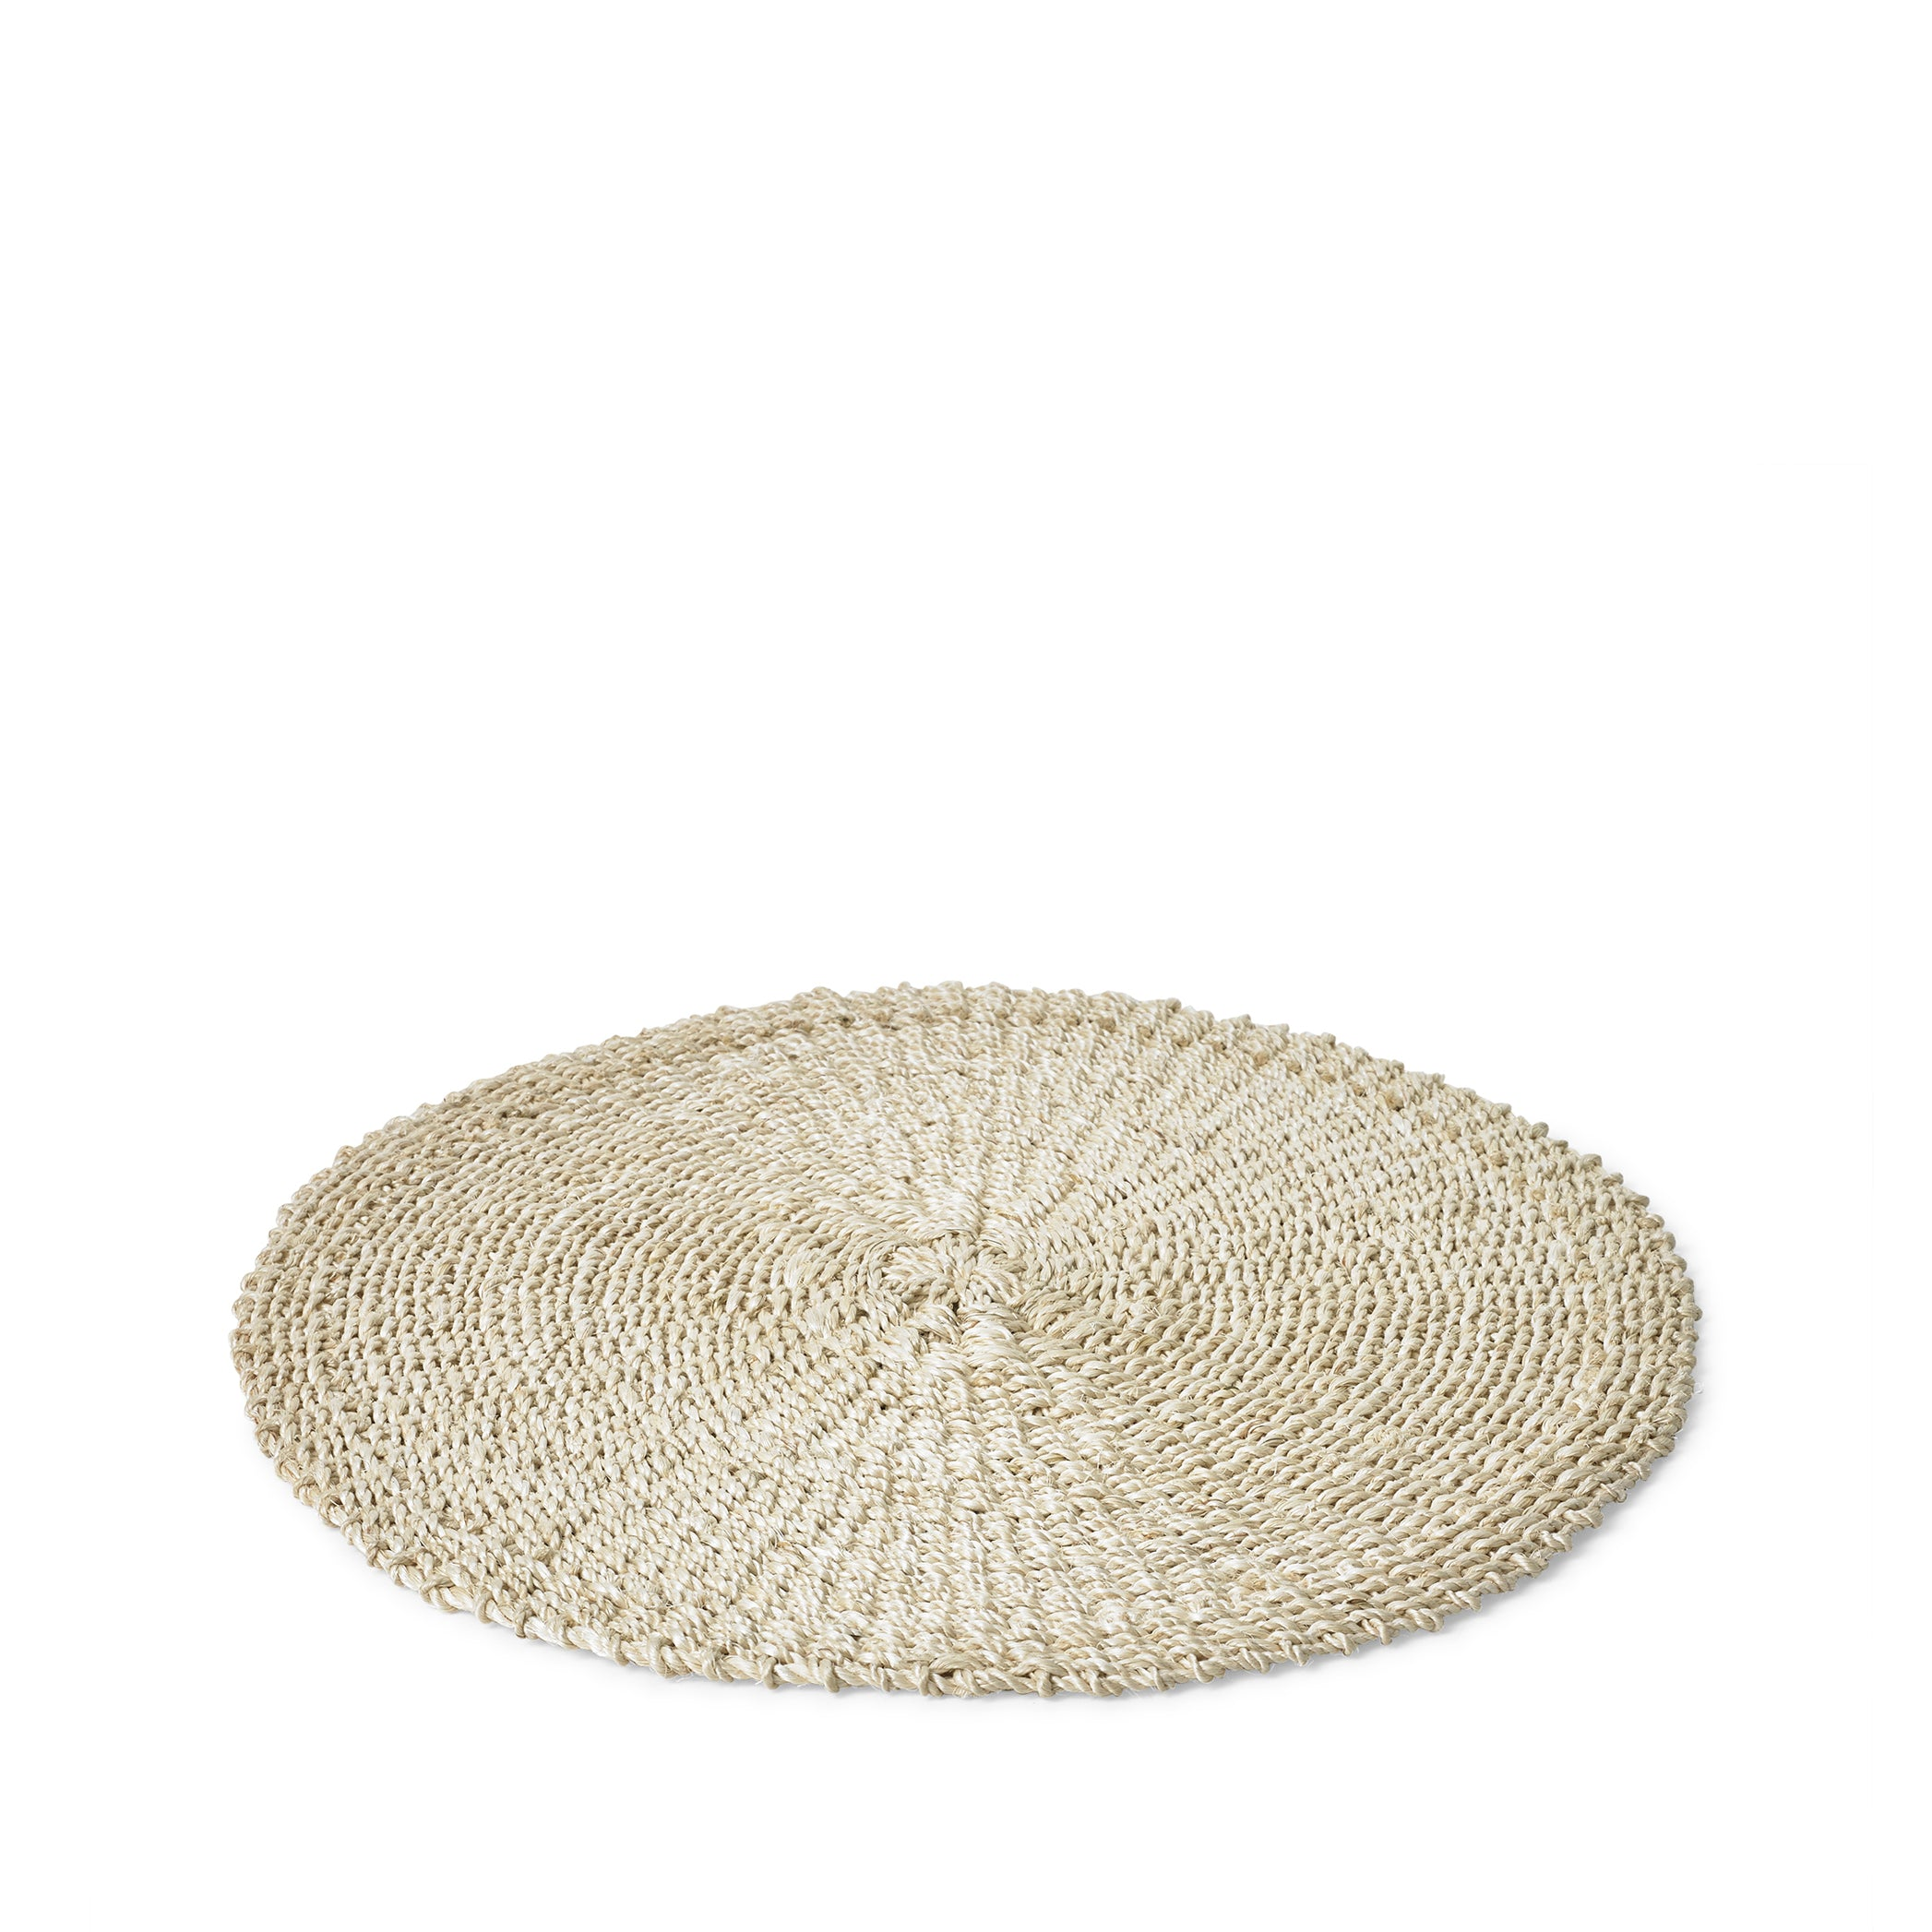 Abaca Woven Round Placemat in Cream